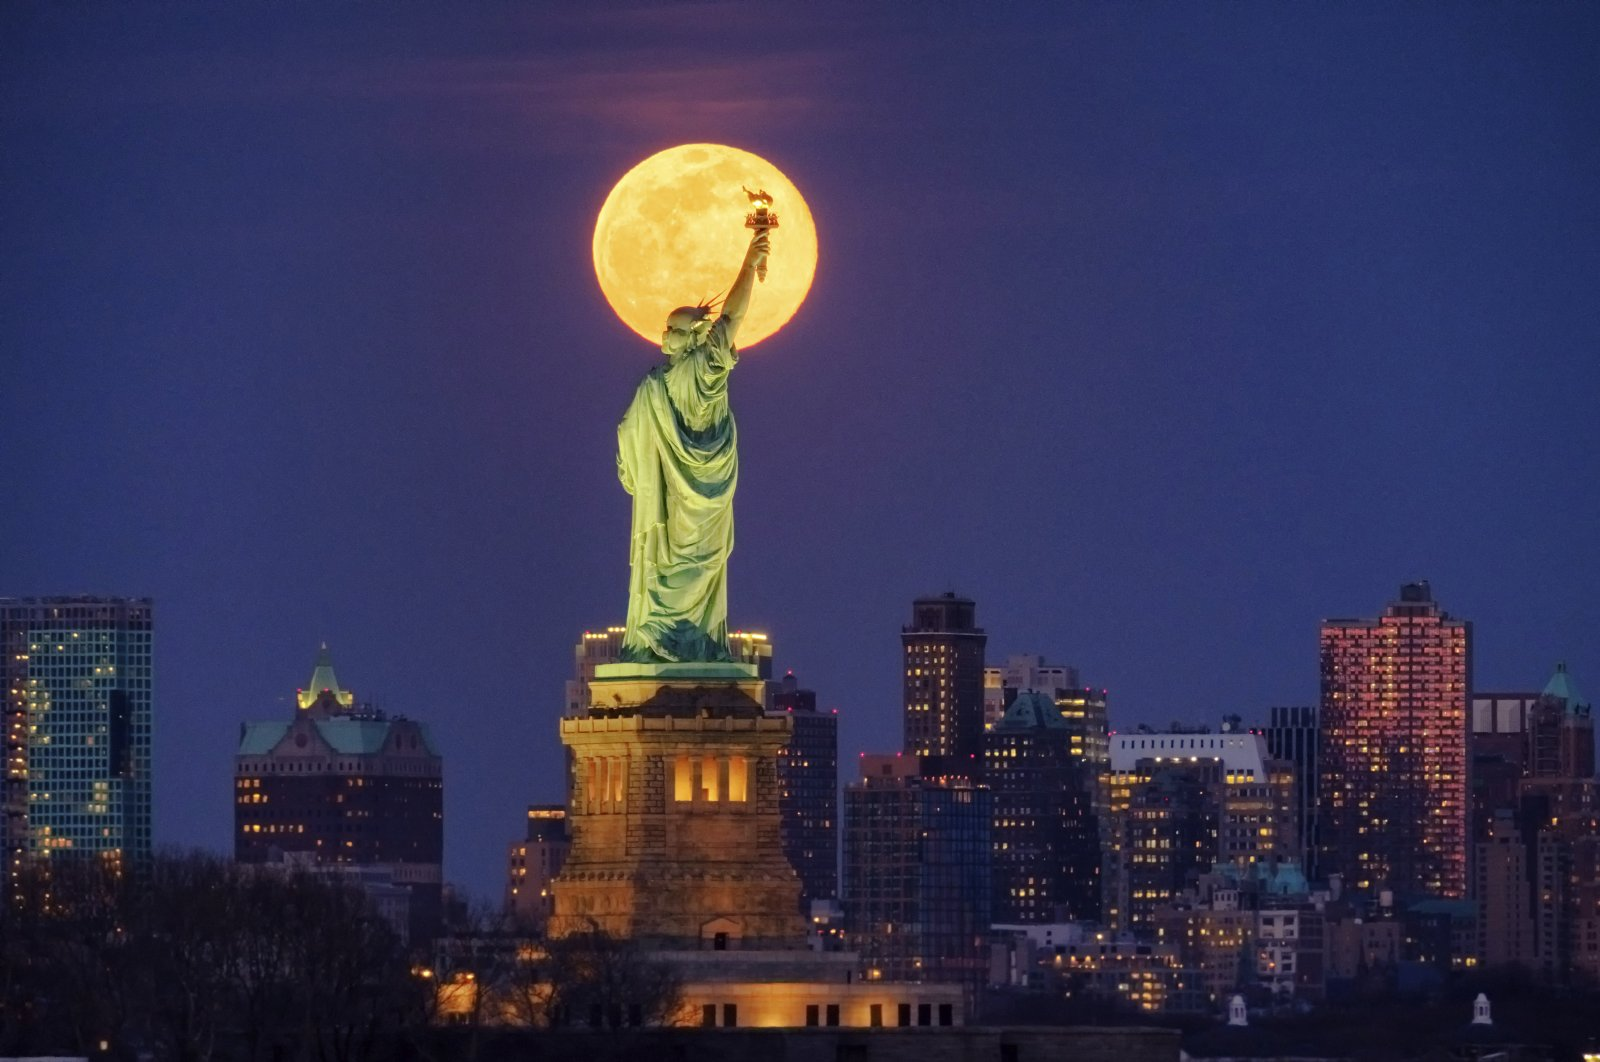 The full moon rises behind the Statue of Liberty in New York, March 9, 2020. (AP Photo)